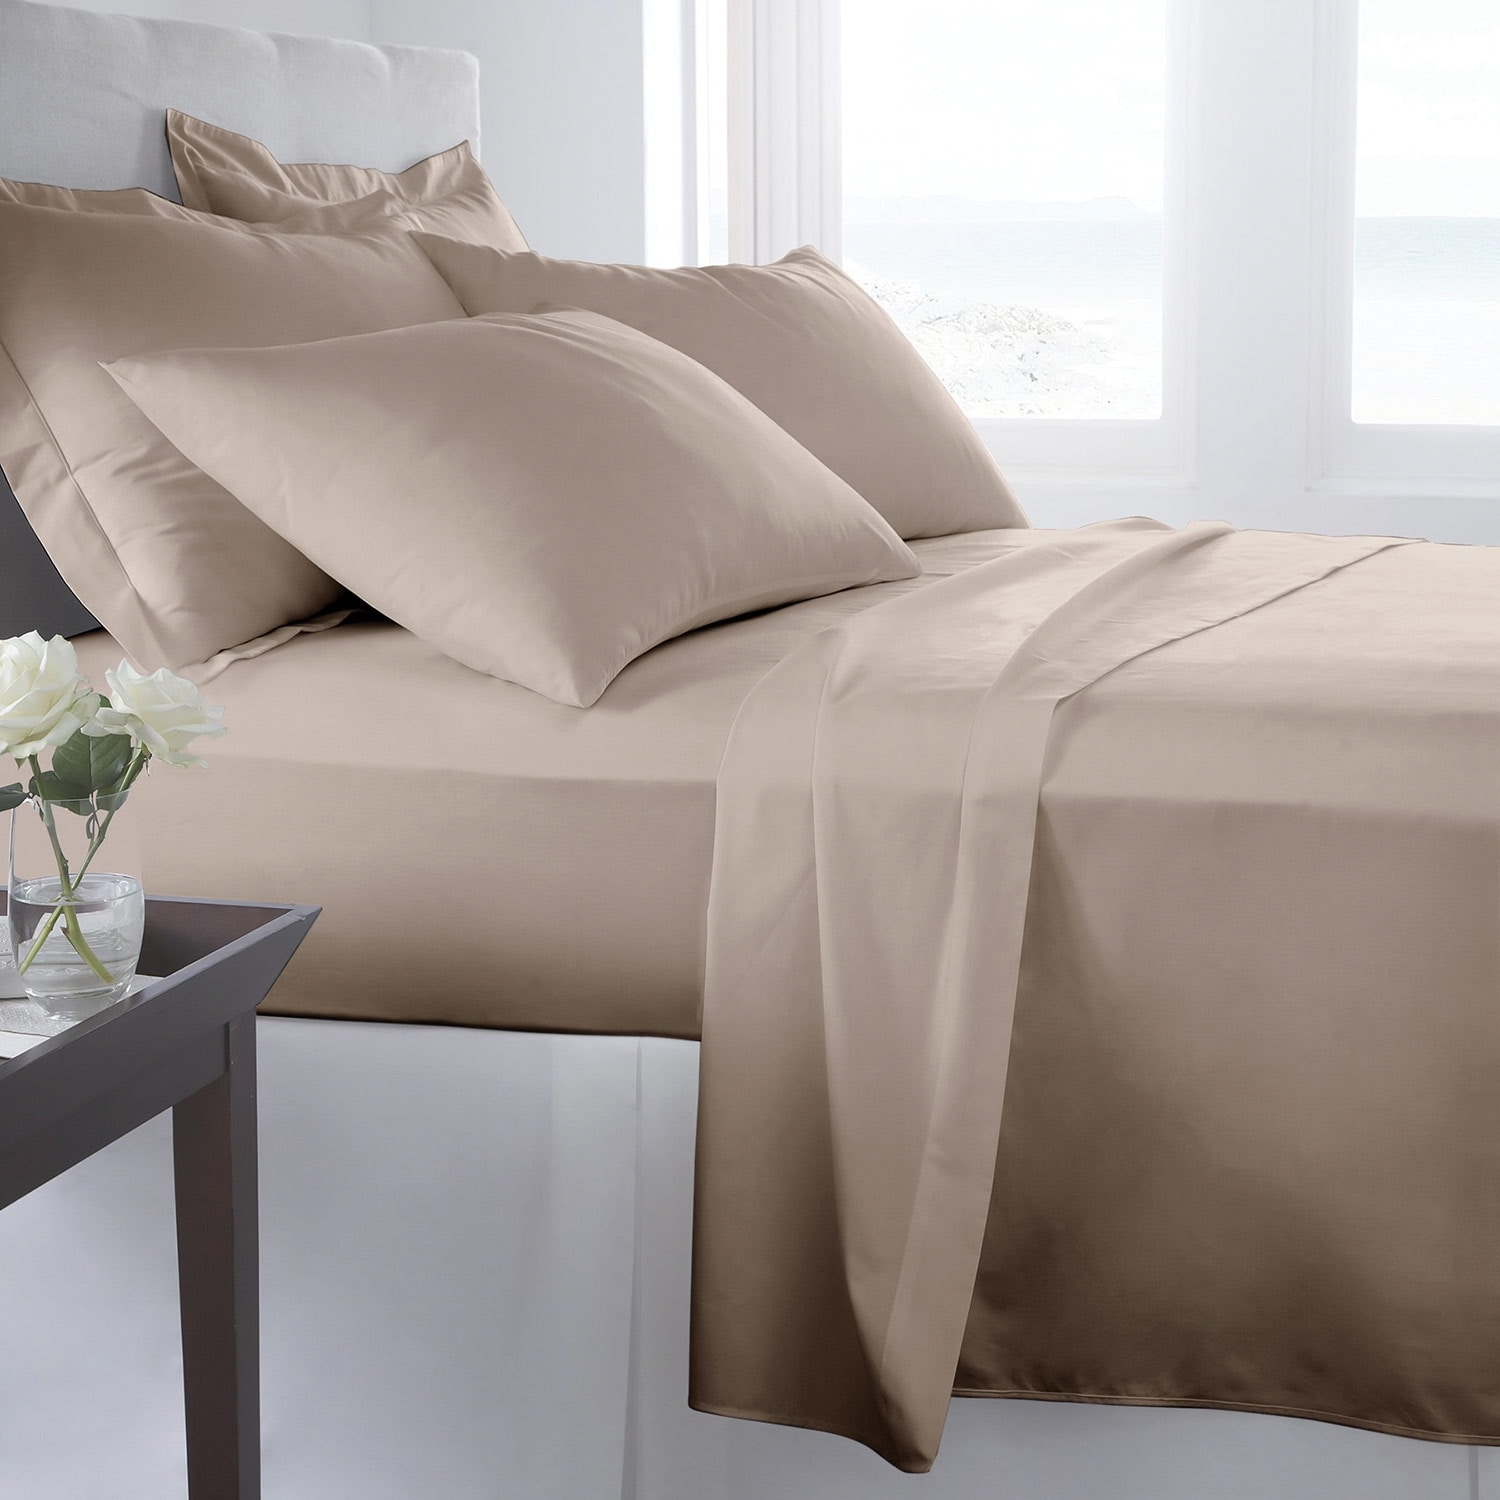 300 Thread Count Queen Sheet Set - Taupe